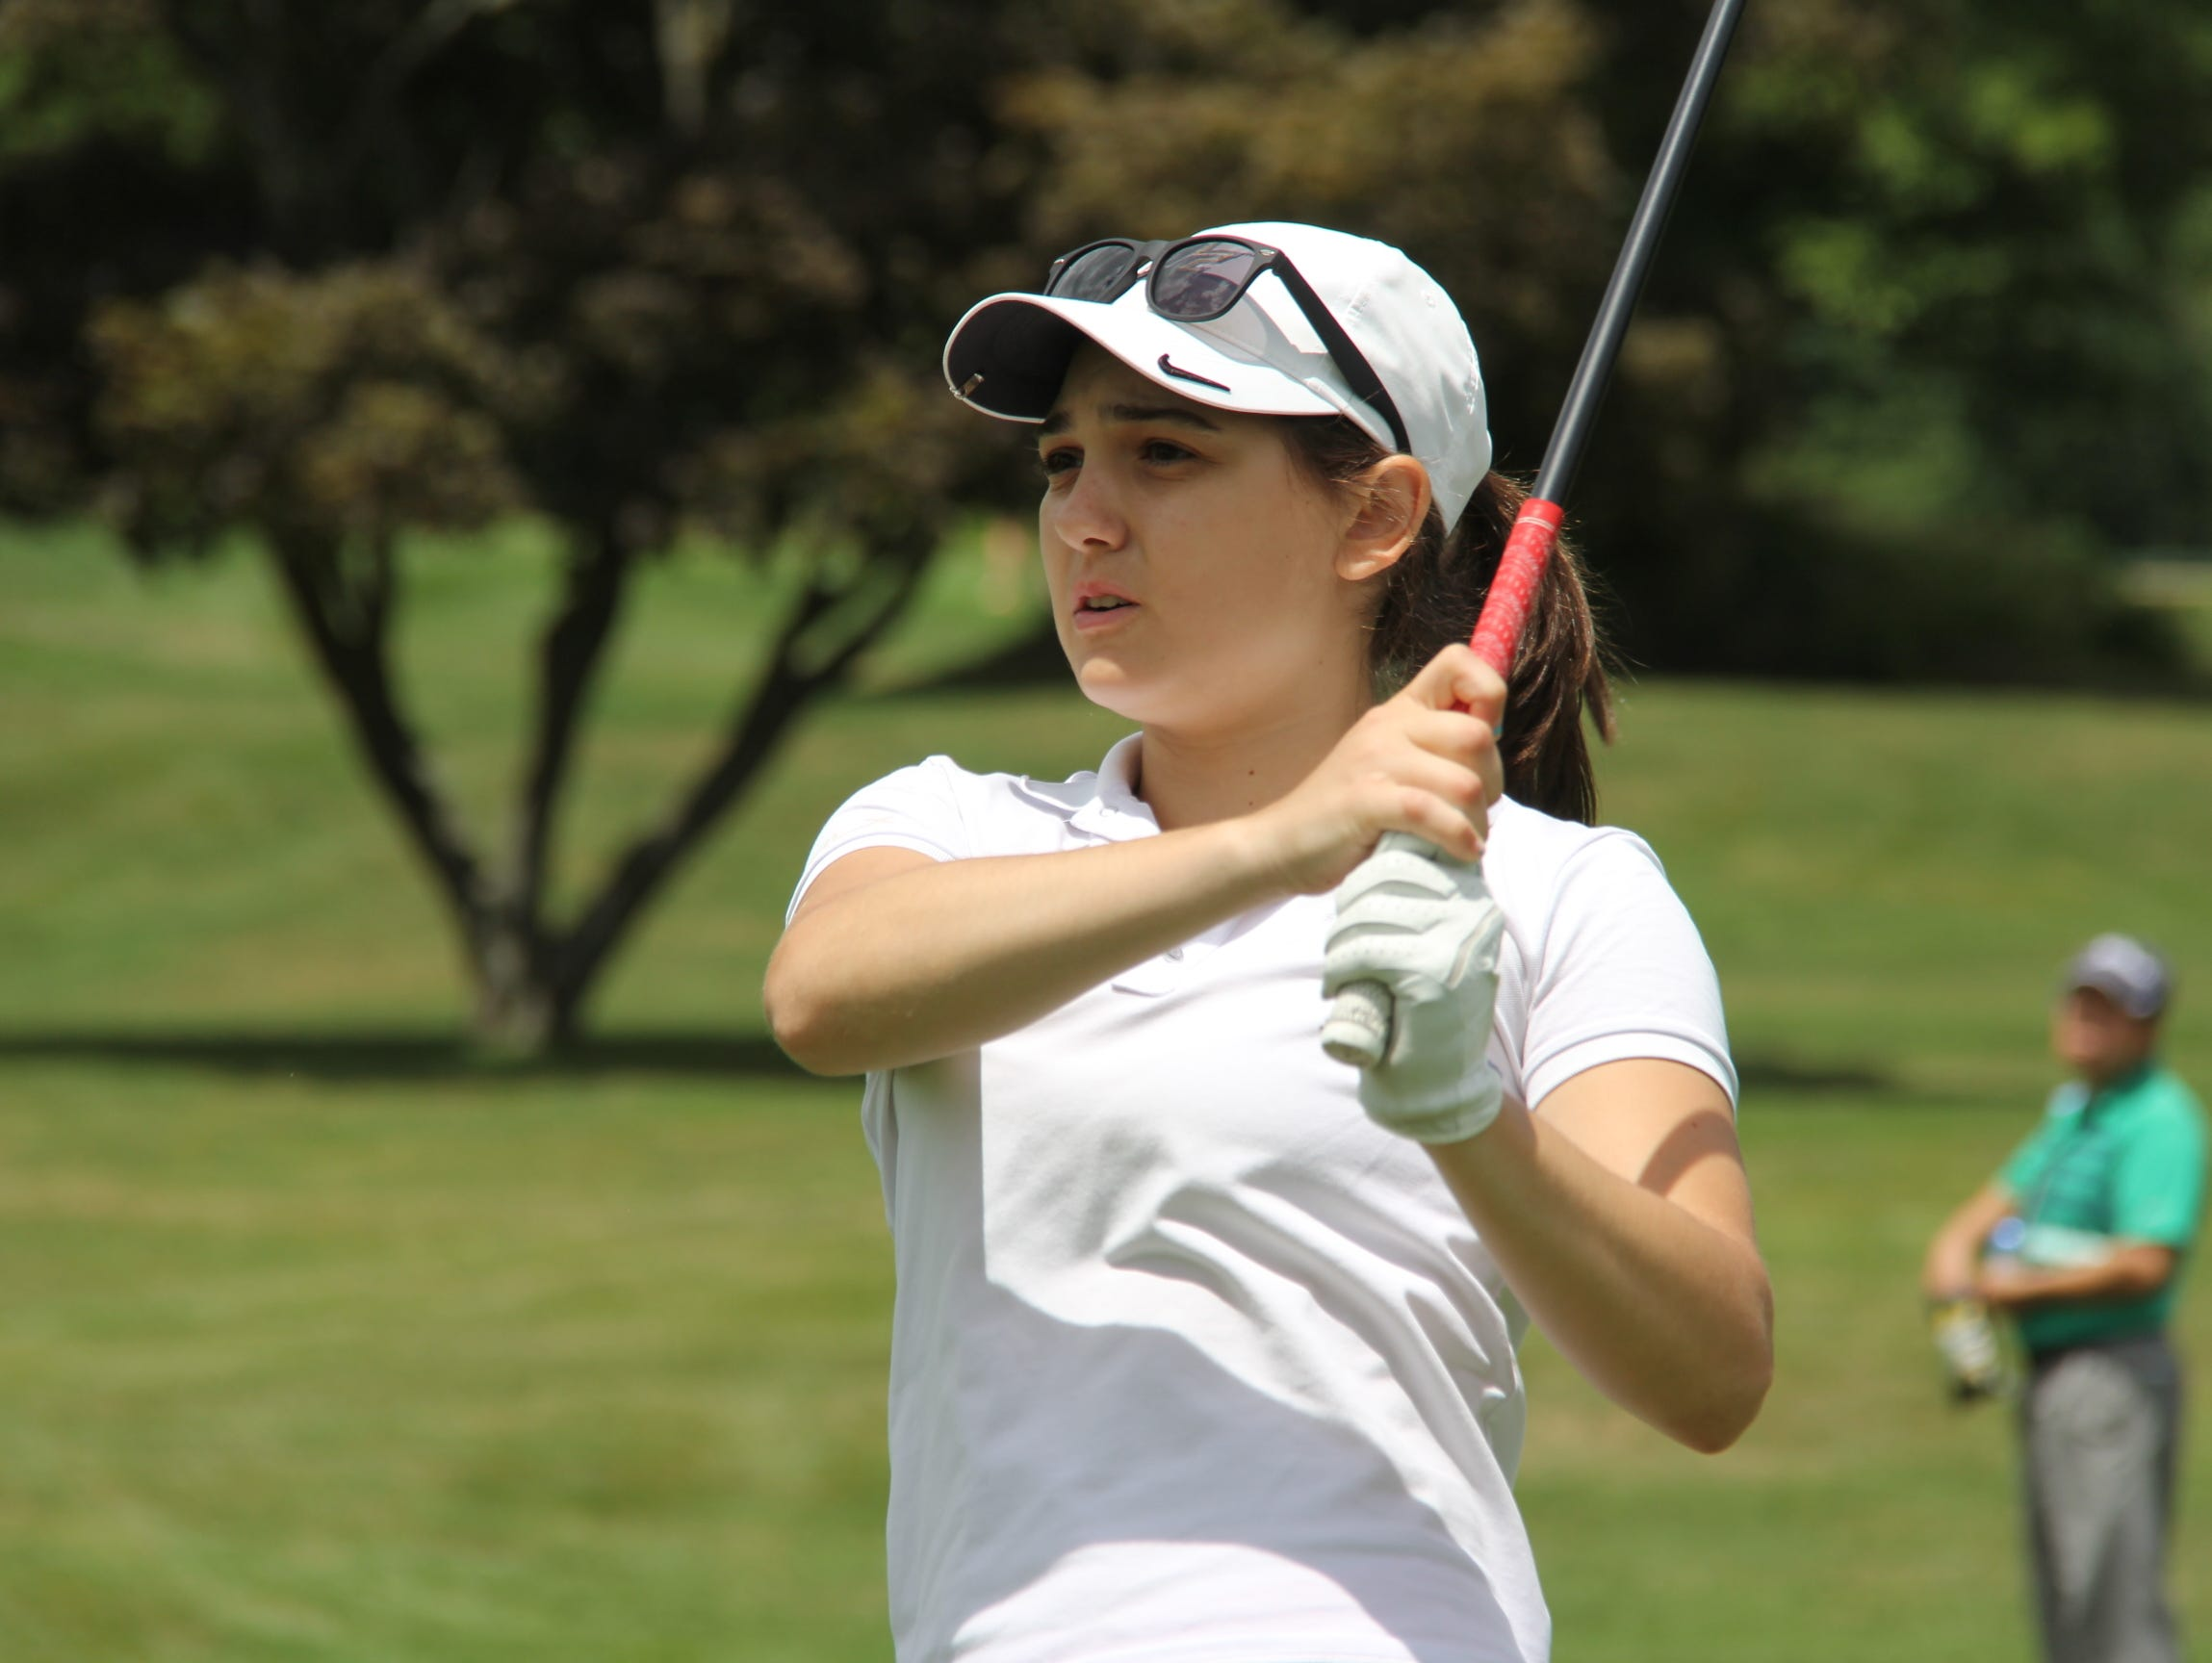 Alessandra Ricigliano, an amateur who plays out of Wykagyl Country Club, is one shot off the lead of the Women's Met Open.